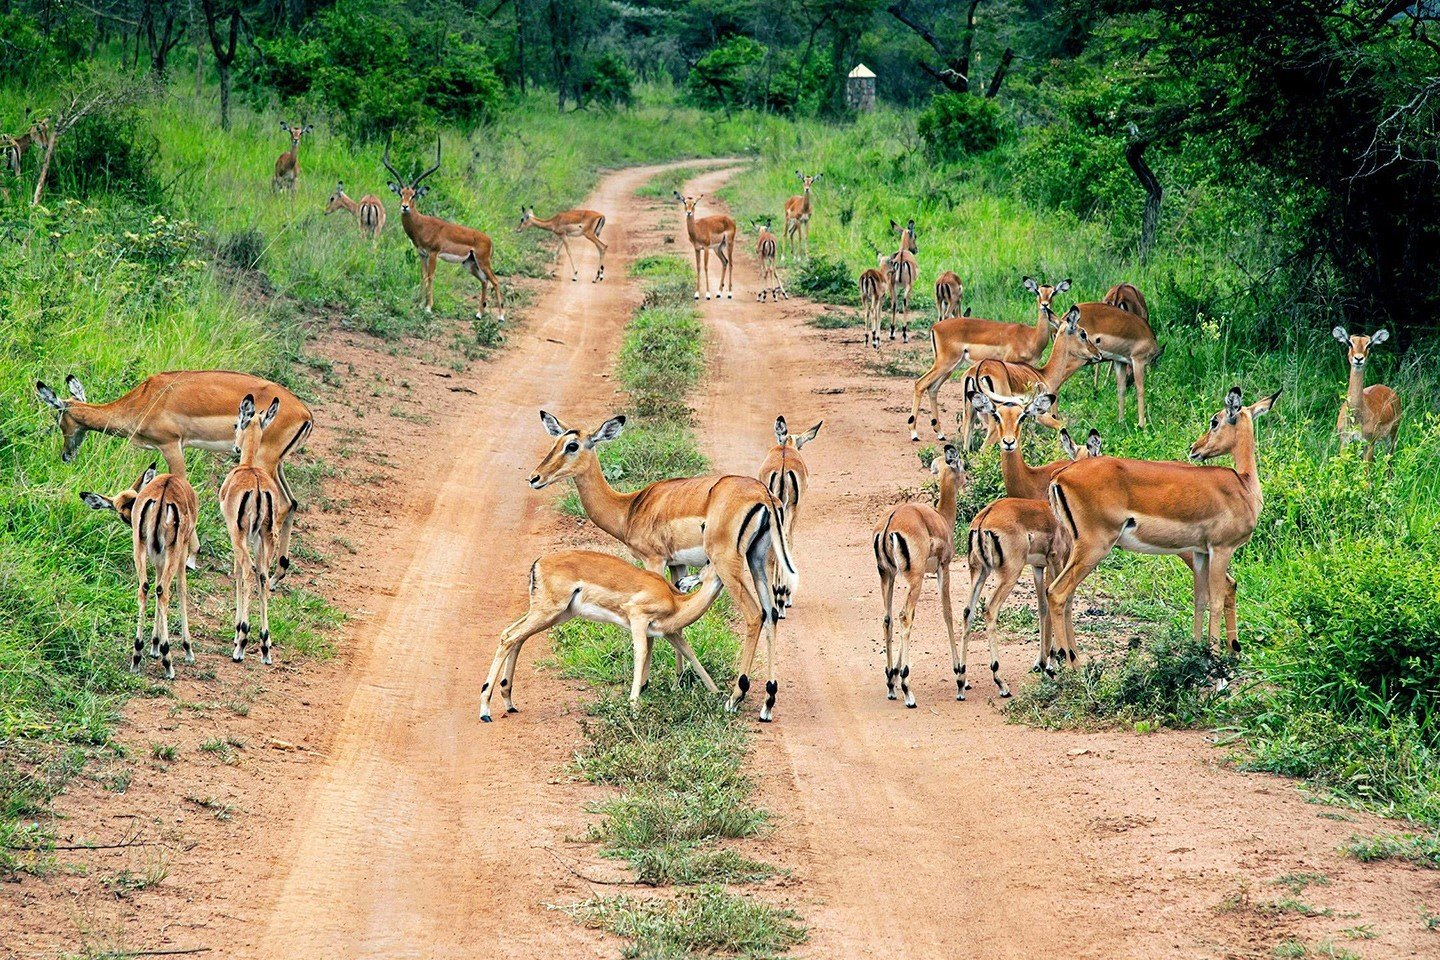 Drive to Kidepo Valley National park and have a game drive